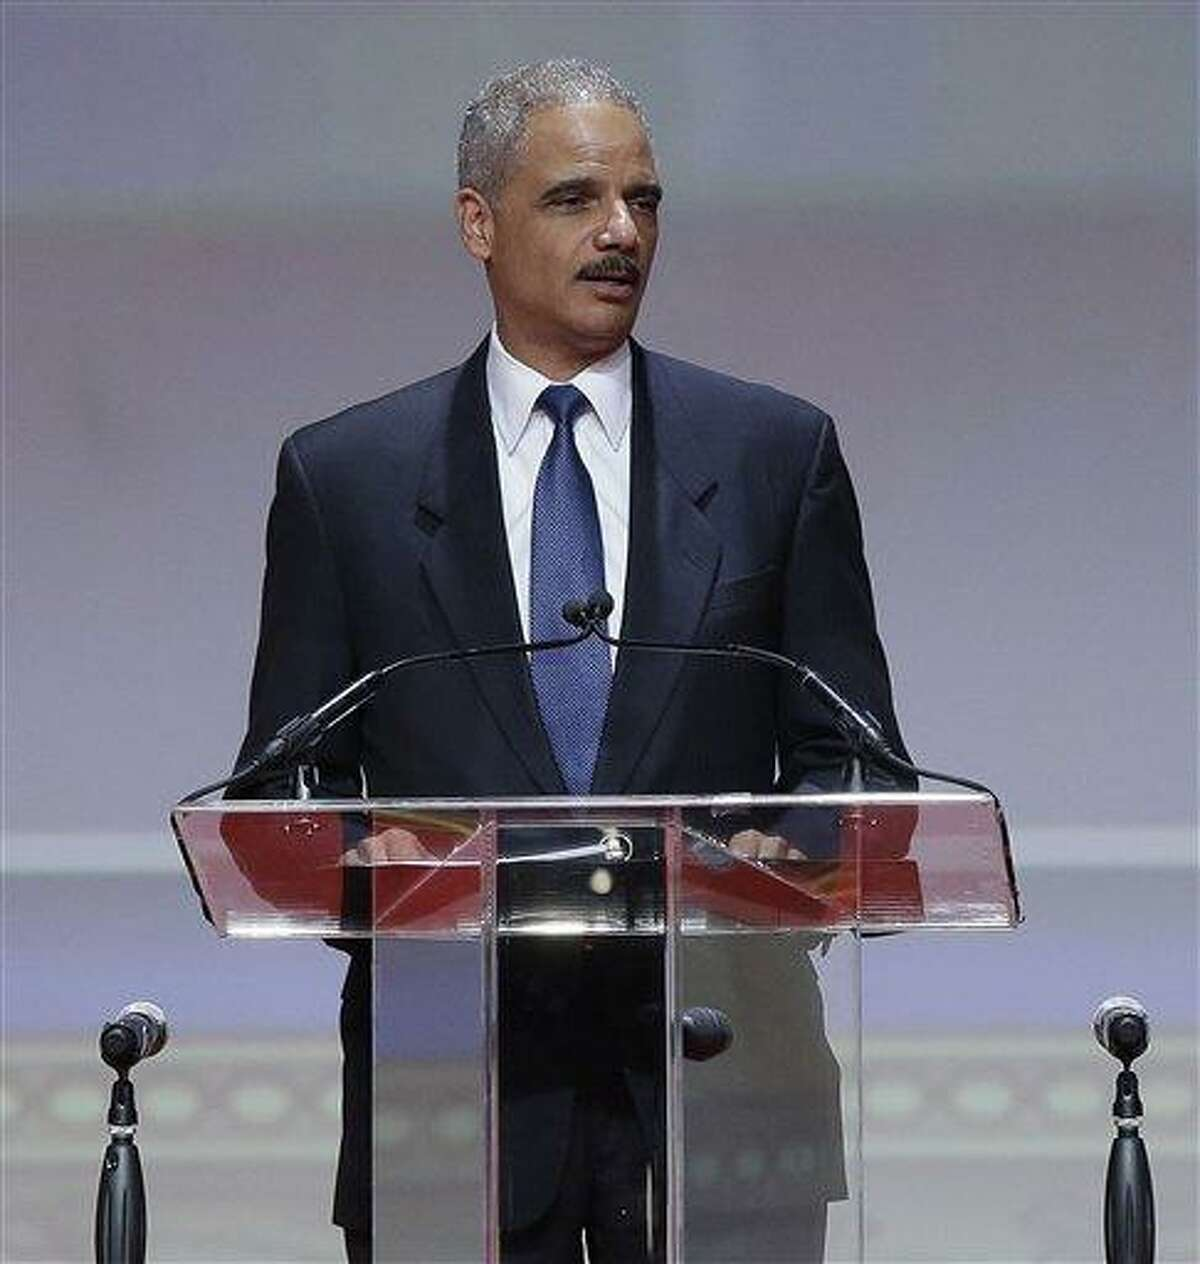 """Attorney General Eric Holder speaks at the Delta Sigma Thetas Social Action luncheon, part of the sorority's 51st National Convention in Washington, Monday, July 15, 2013. Holder said the killing of Trayvon Martin was a """"tragic, unnecessary shooting"""" and that the 17-year-old's death provides an opportunity for the nation to speak honestly about complicated and emotionally charged issues. In his first comments since the acquittal of George Zimmerman in the Martin case, the attorney general said that Martin's parents have suffered a pain that no parent should have to endure. He said the nation must not forgo an opportunity toward better understanding of one another. (AP Photo/Pablo Martinez Monsivais)"""